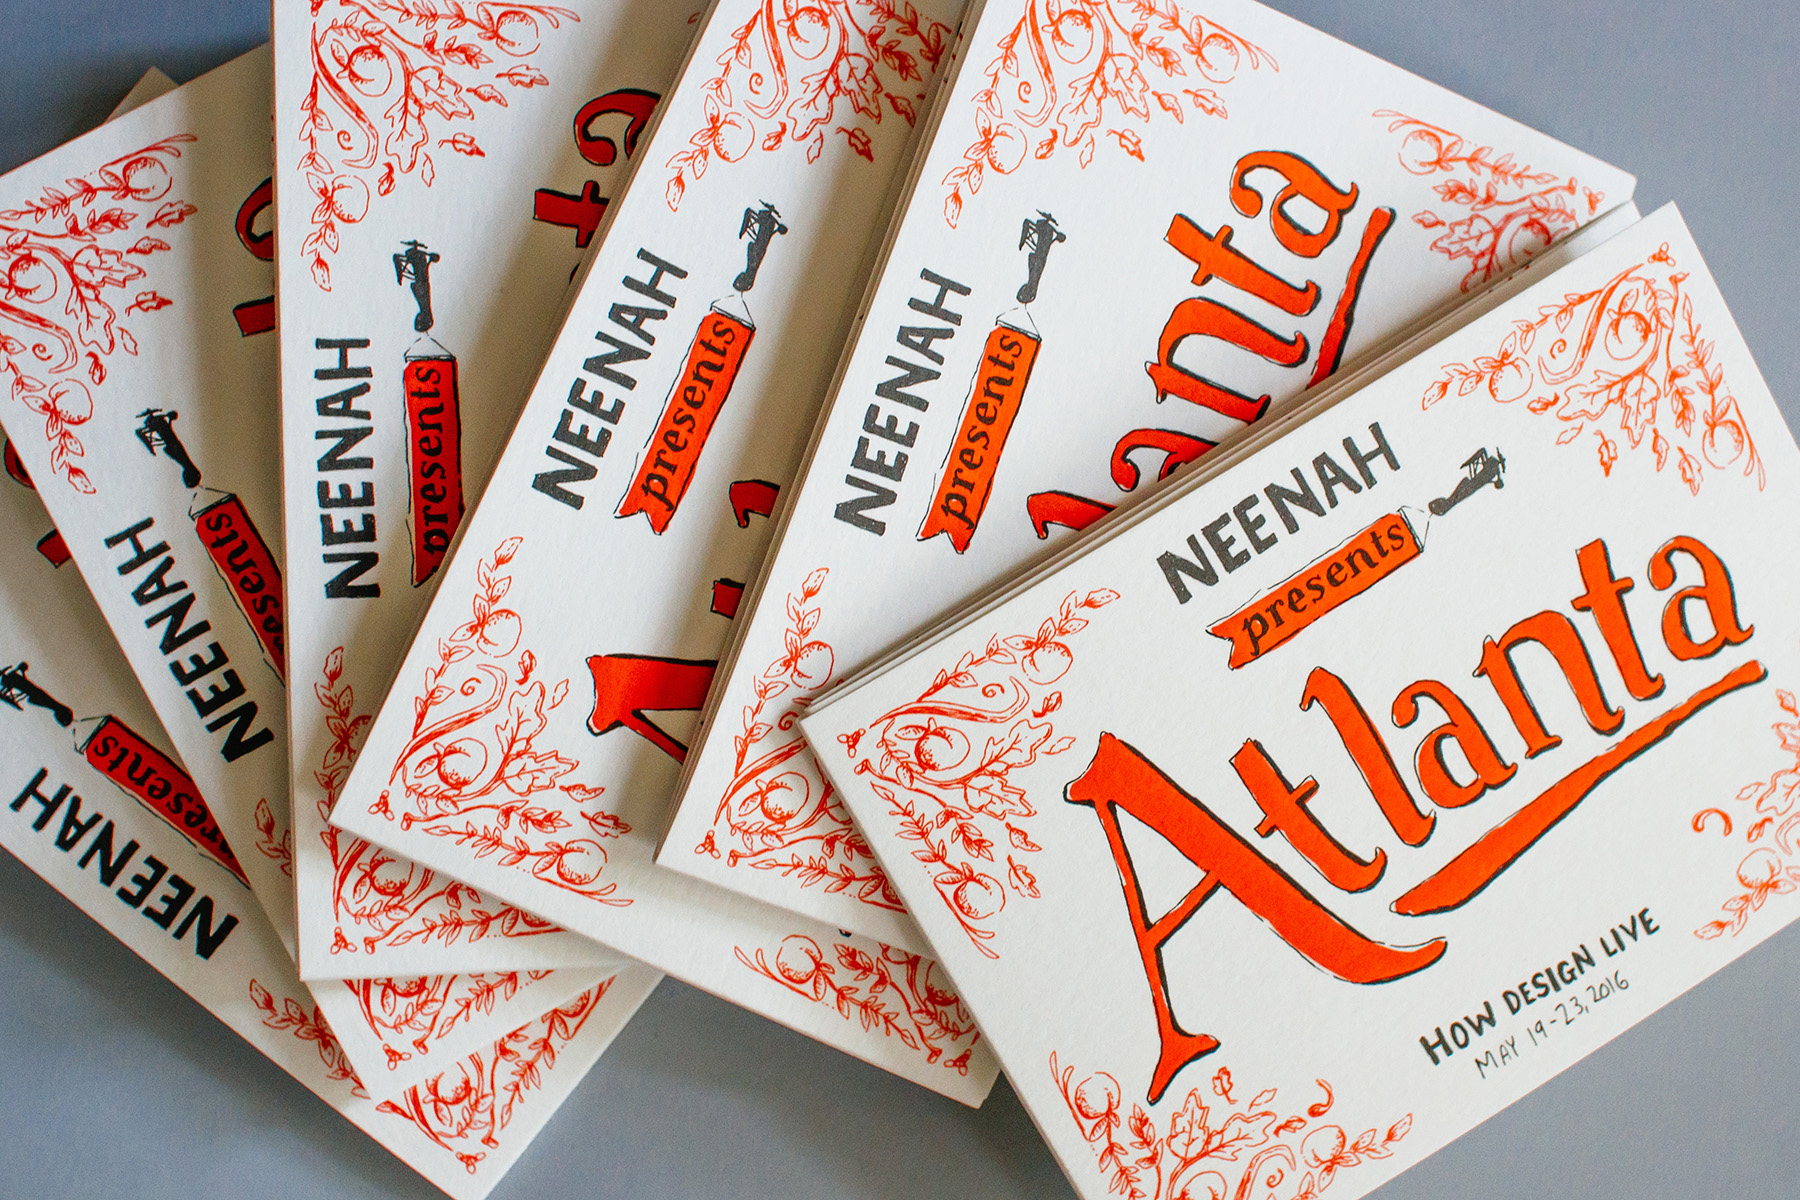 Scattered cover designs of Neenah presents Atlanta for HOW Design Live 2016, hand drawn illustration and handlettering for historical timeline and neighborhood maps of the city. Artwork by freelance designer Russell Shaw.